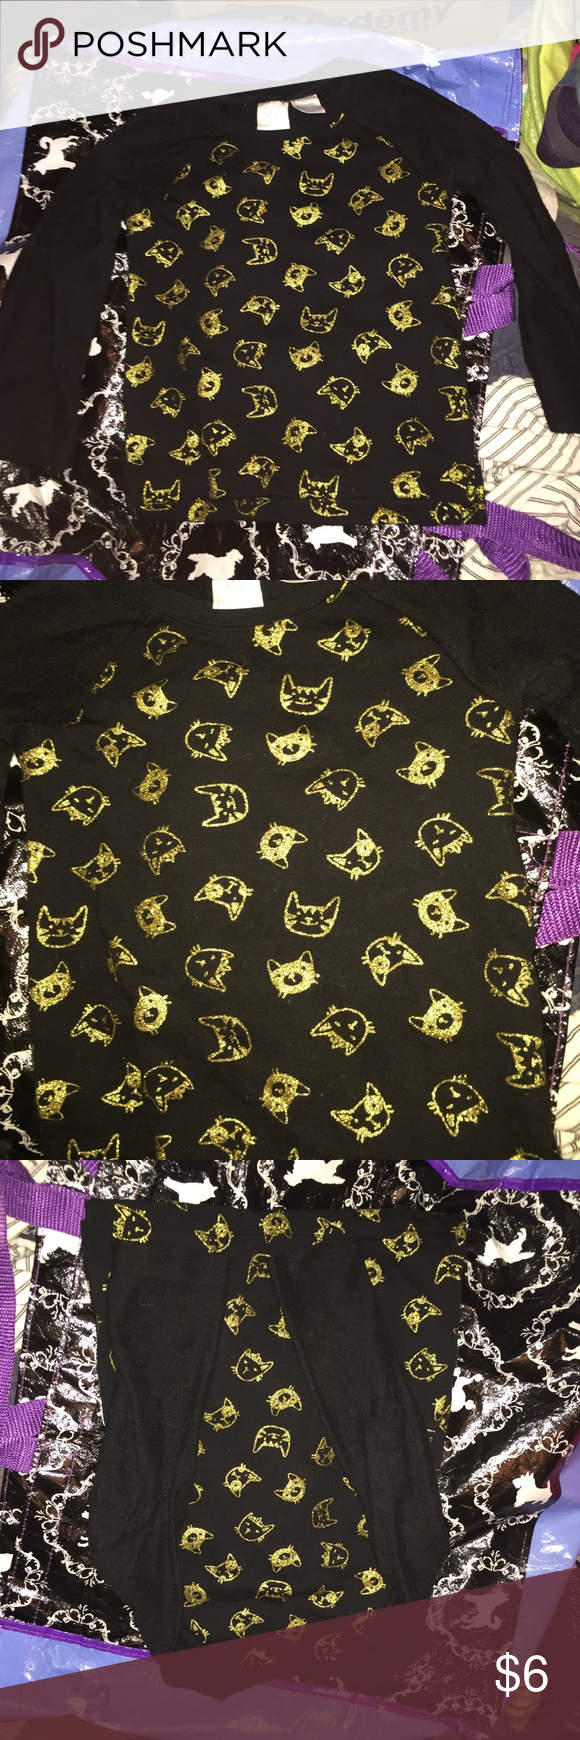 Brand-new without tags's kitty cat shirt Brand-new never been worn I took the tags off sweater material with gold glittery cats on it size 3 t Shirts & Tops Sweaters